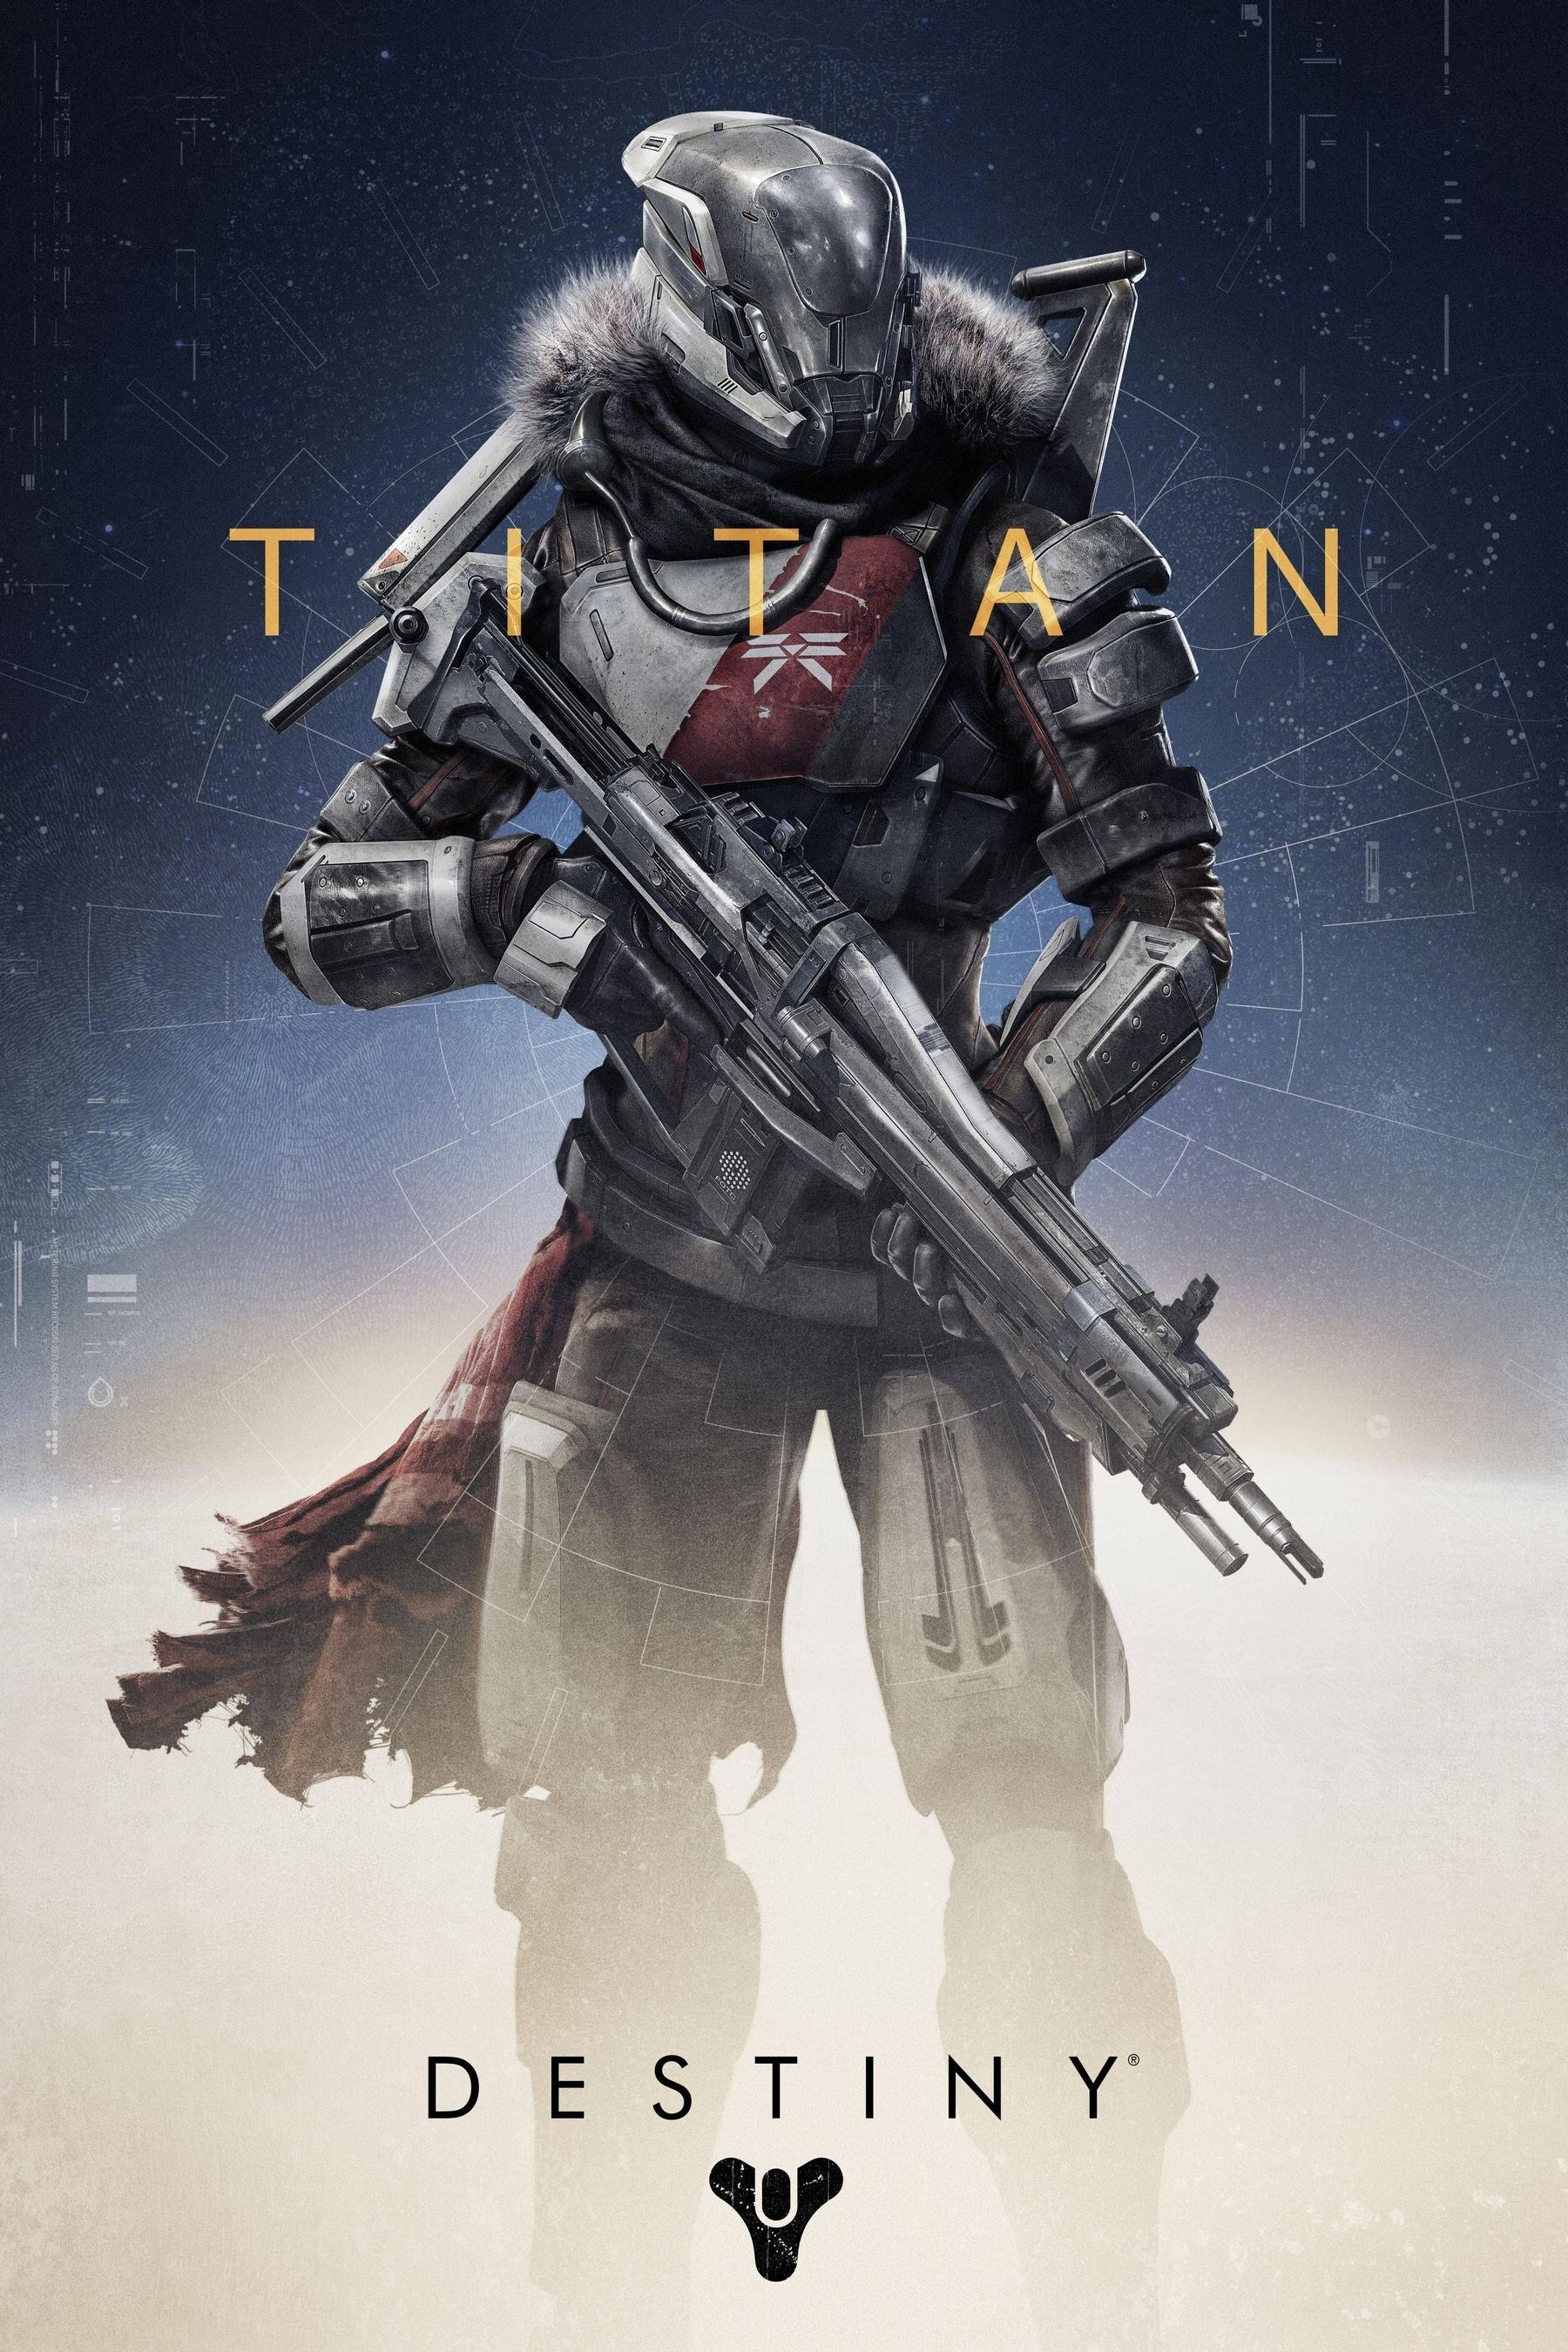 Destiny 1920x1080 Titan Moon Iphone Wallpaper Wwwpicsbudcom